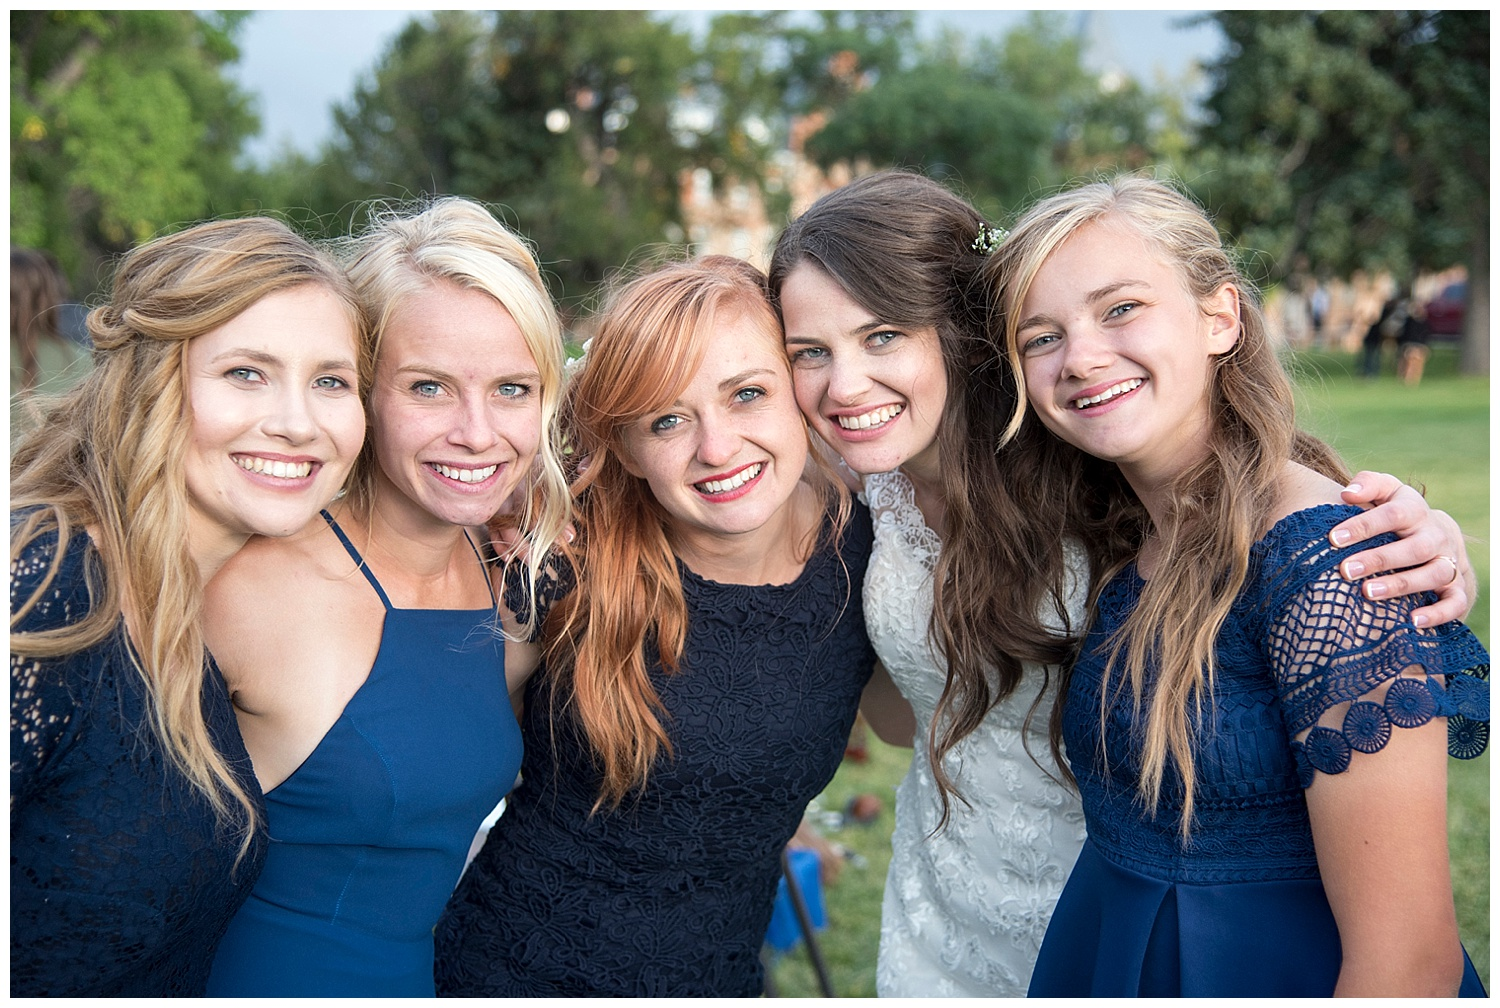 Beautiful Bridal Party | Bethany and Jono's Intimate DIY Wedding | Colorado Springs Wedding Photographer | Farm Wedding Photographer | Apollo Fields Wedding Photojournalism